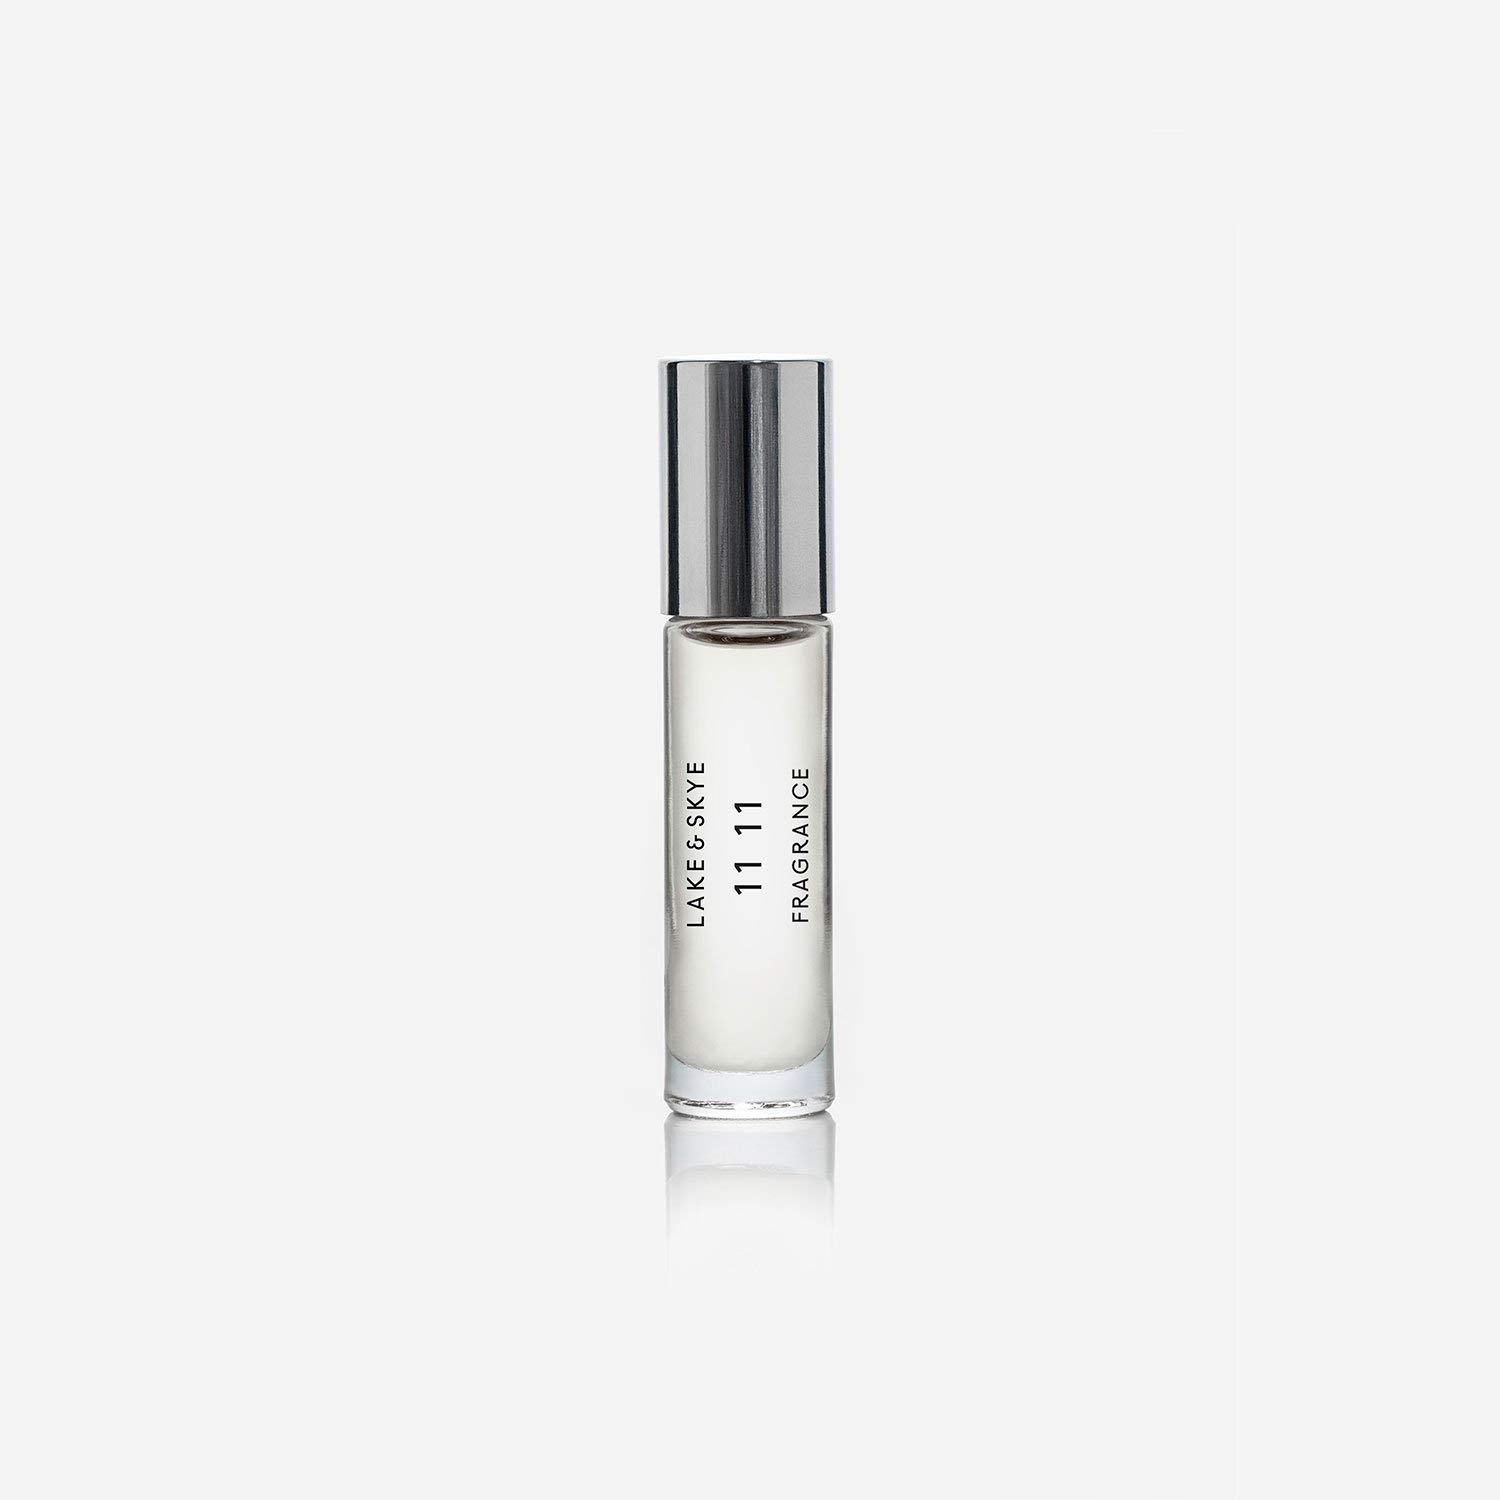 LAKE & SKYE 11 11 - Rollerball Fragrance Oil - Best Selling Unisex Fragrance Collection With a Musky Blend of Natural White Ambers. (0.33 oz 10 ml)